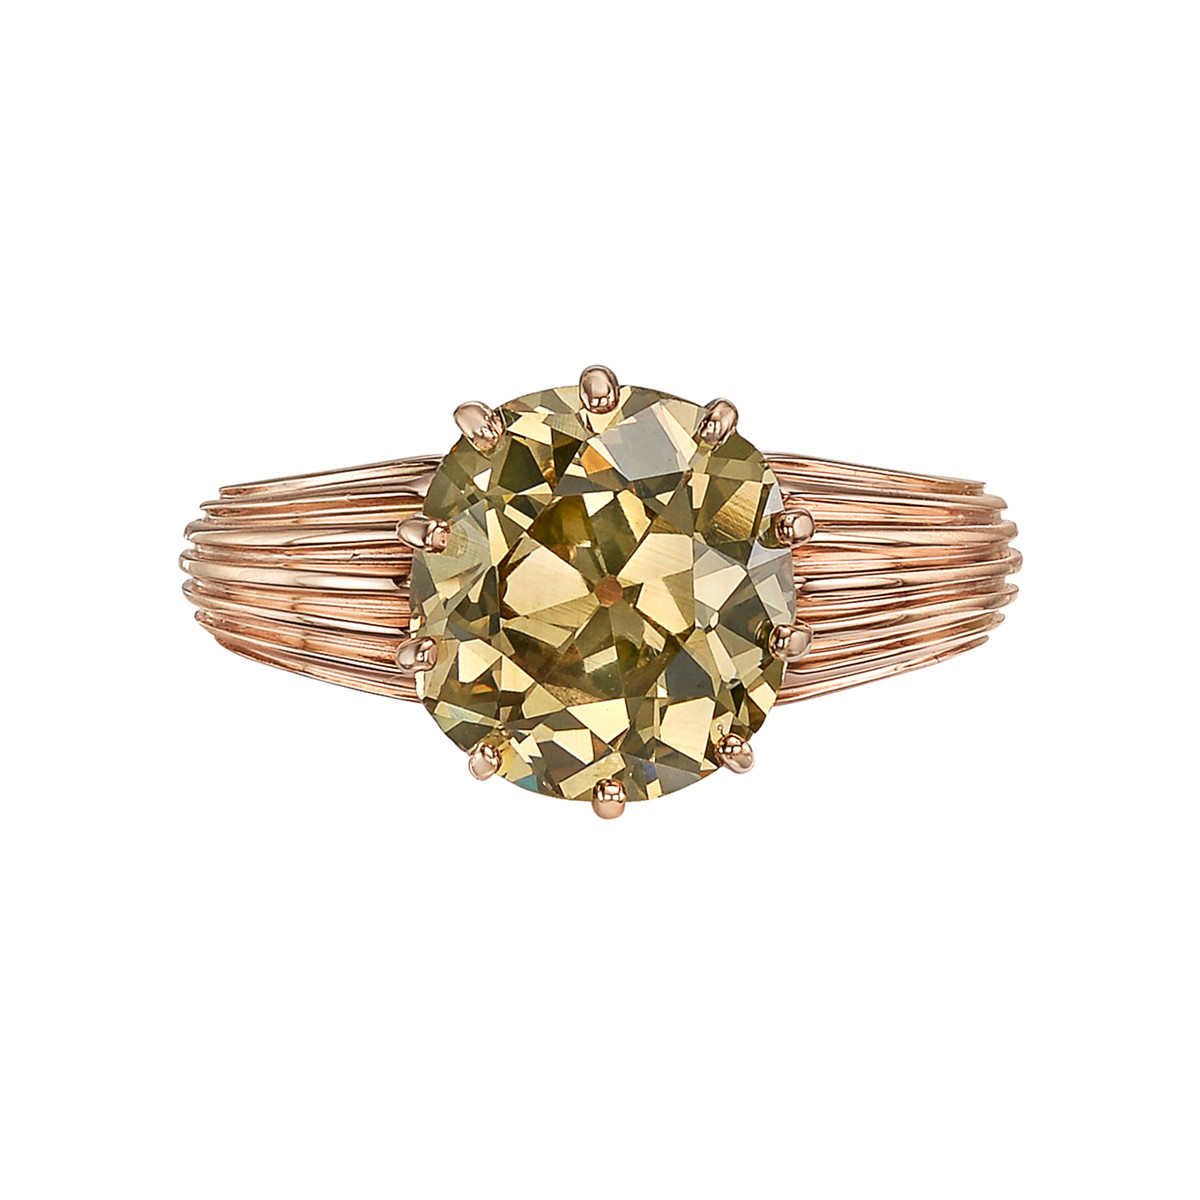 2.71ct Old Mine Brown Diamond Solitaire Ring